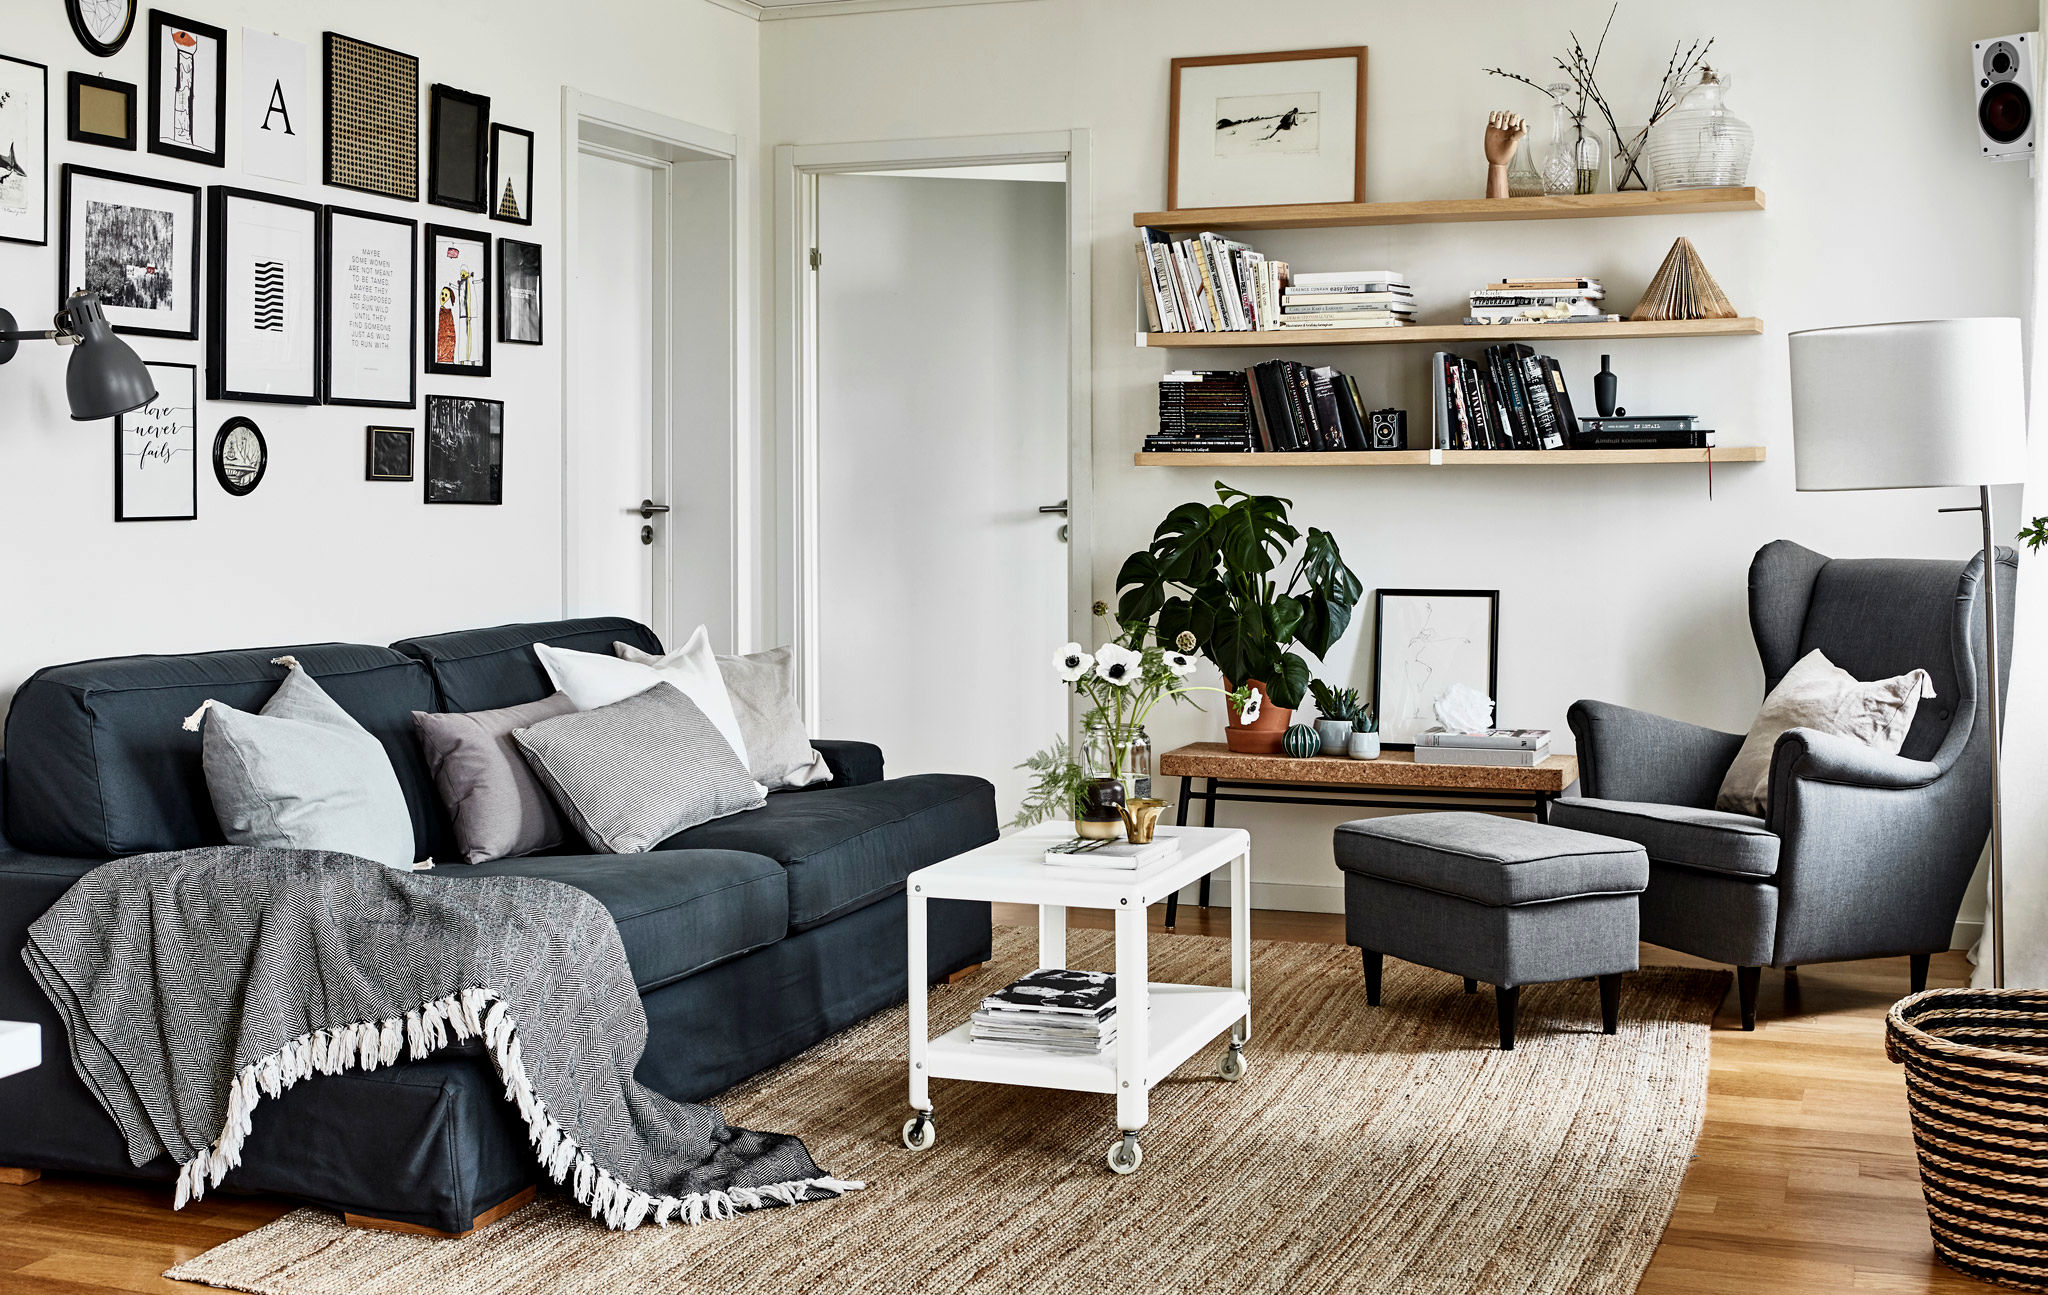 Sofa Soderhamn Ikea Superb Ikea Soderhamn Sofa Pattern Modern Sofa Design Ideas